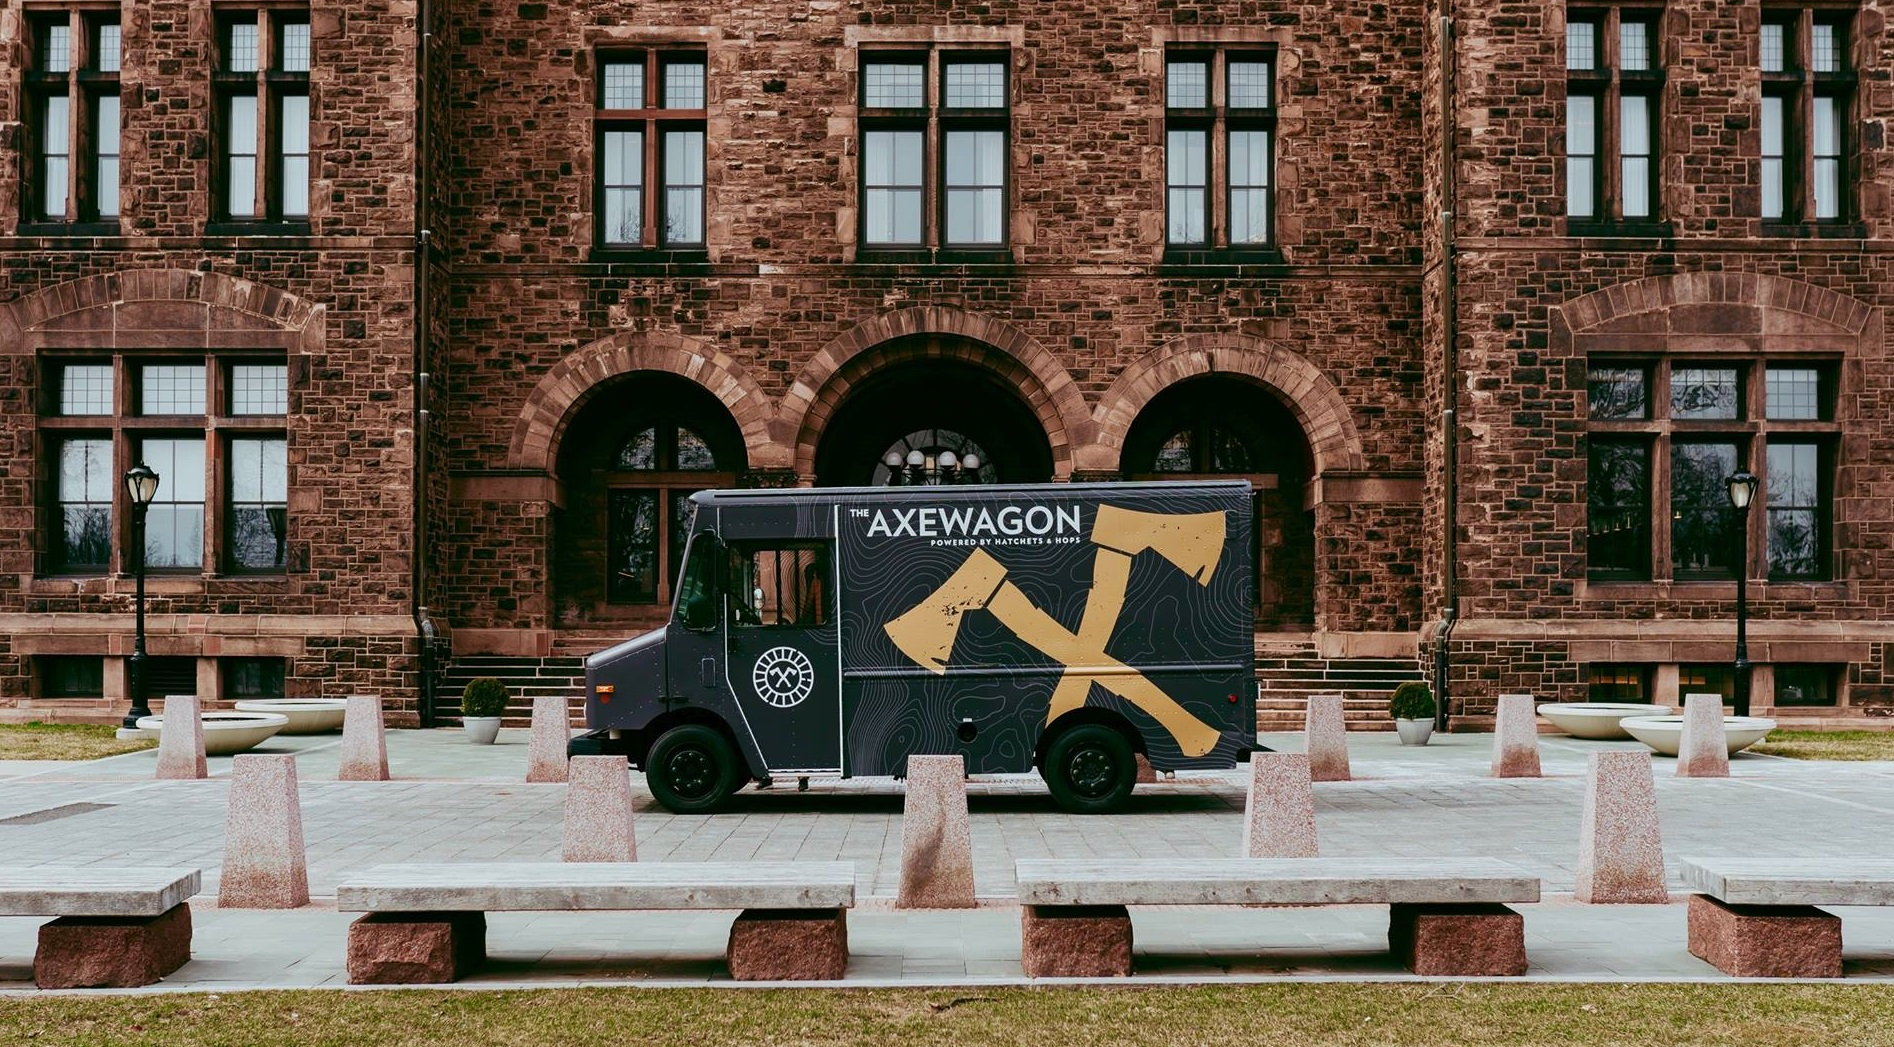 The AxeWagon, pictured in front of Hotel Henry, will bring the allure of Hatchets & Hops to festivals and private events. (via AxeWagon)